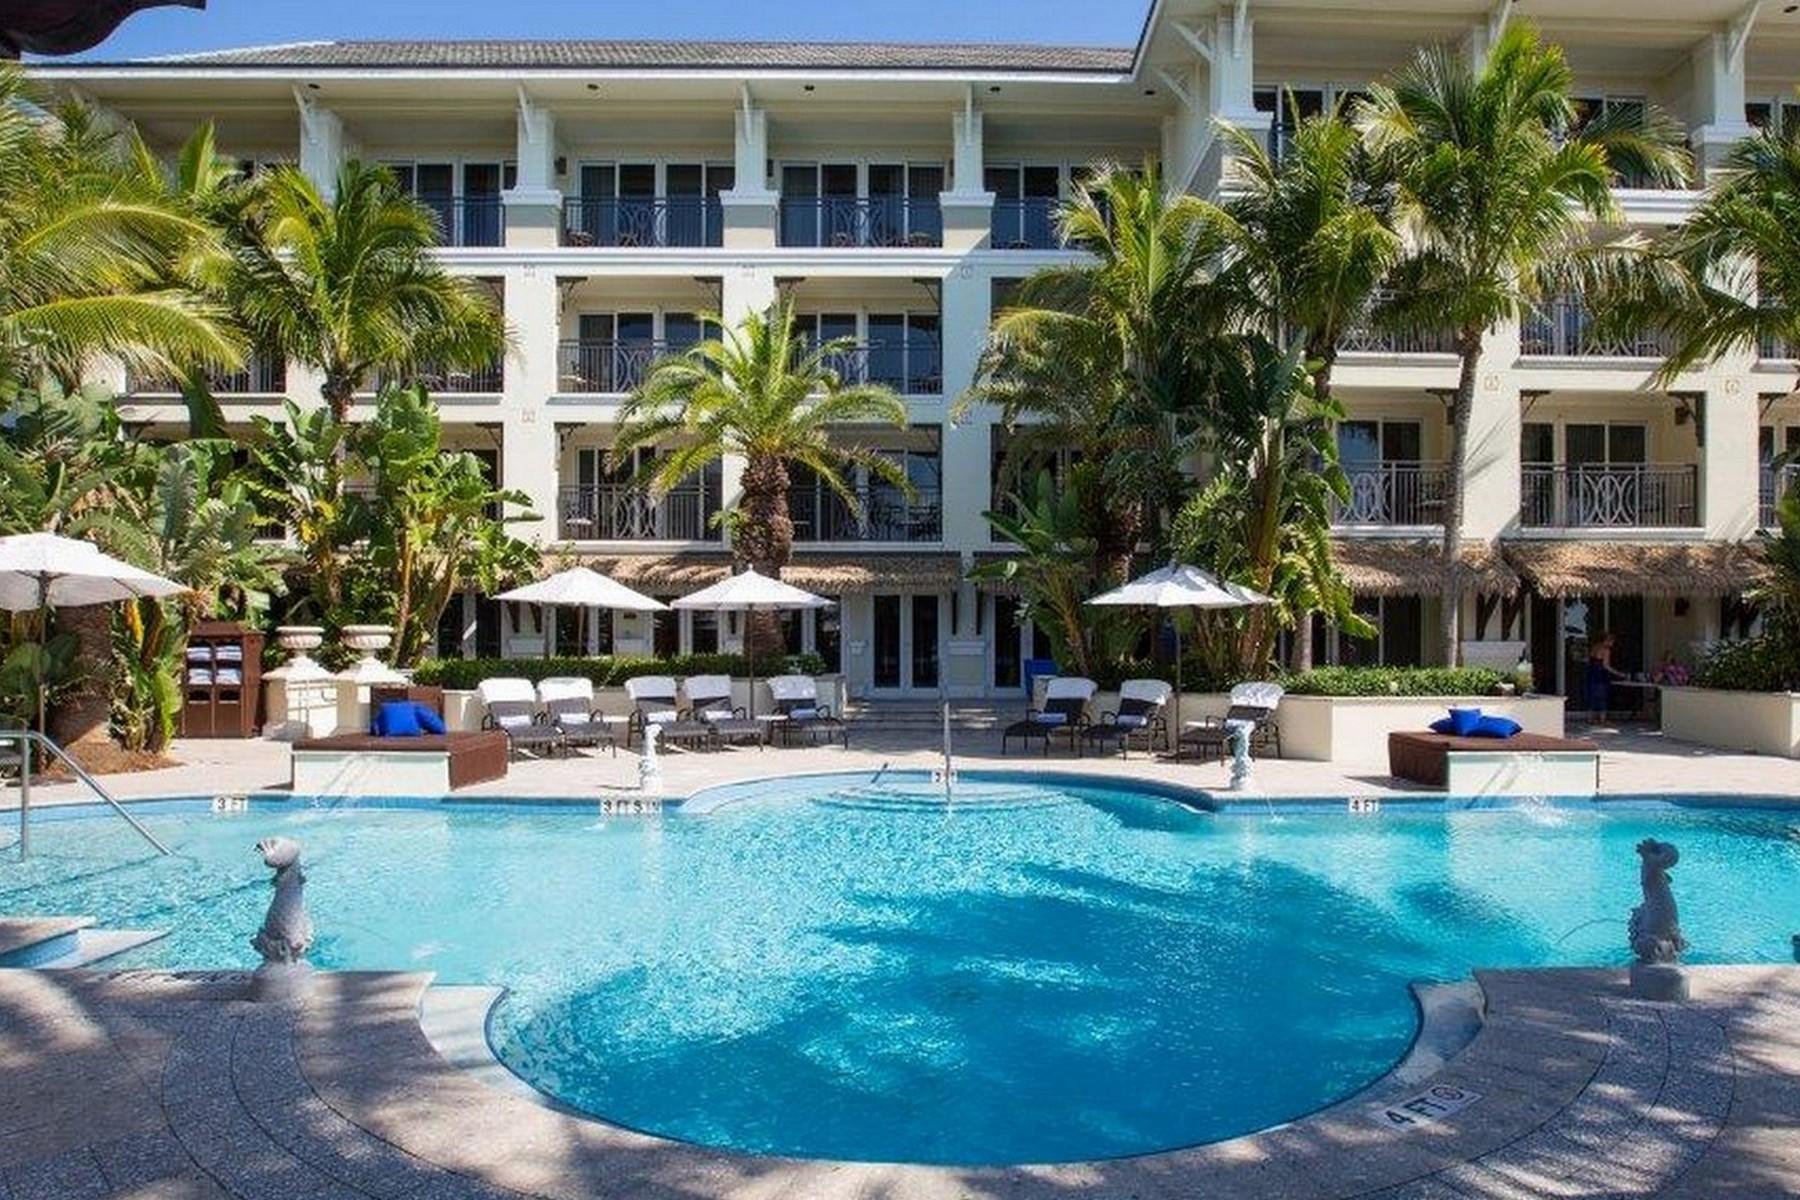 Condominium for Sale at Elegant Oceanfront Condo in Vero Beach Hotel & Spa 3500 Ocean Drive #215 Vero Beach, Florida, 32963 United States